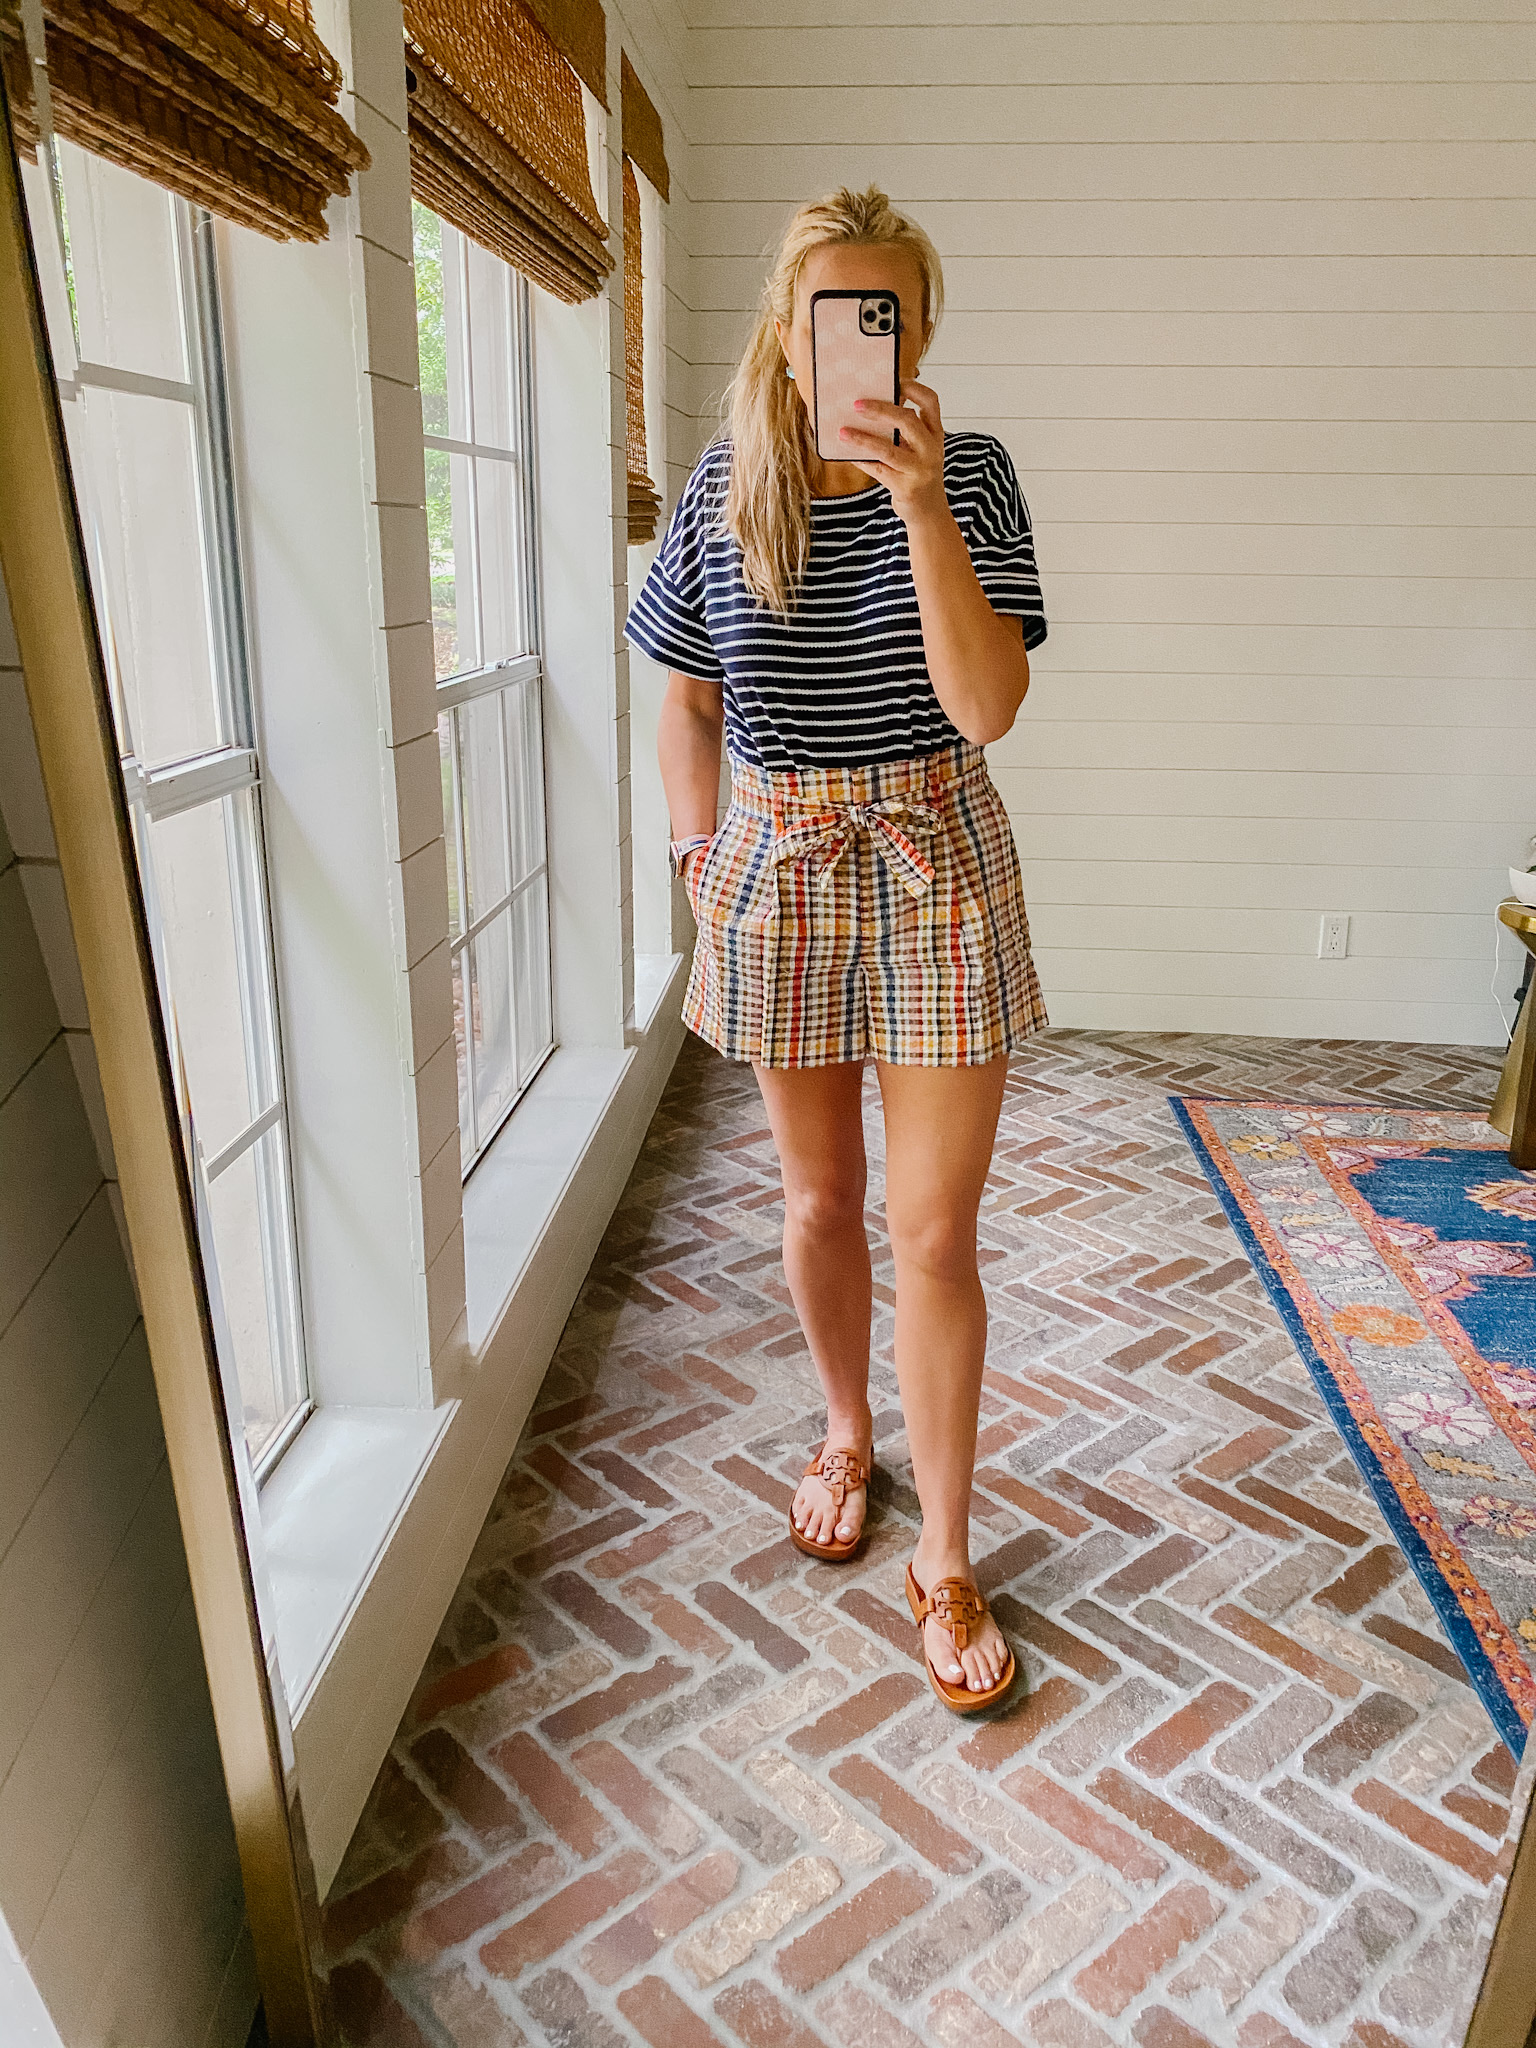 Loft Clothing by popular Houston fashion blog, The House of Fancy: image of a woman wearing a Loft blue and white stripe top, plaid paper bag shorts, and brown Tory Burch slide sandals.